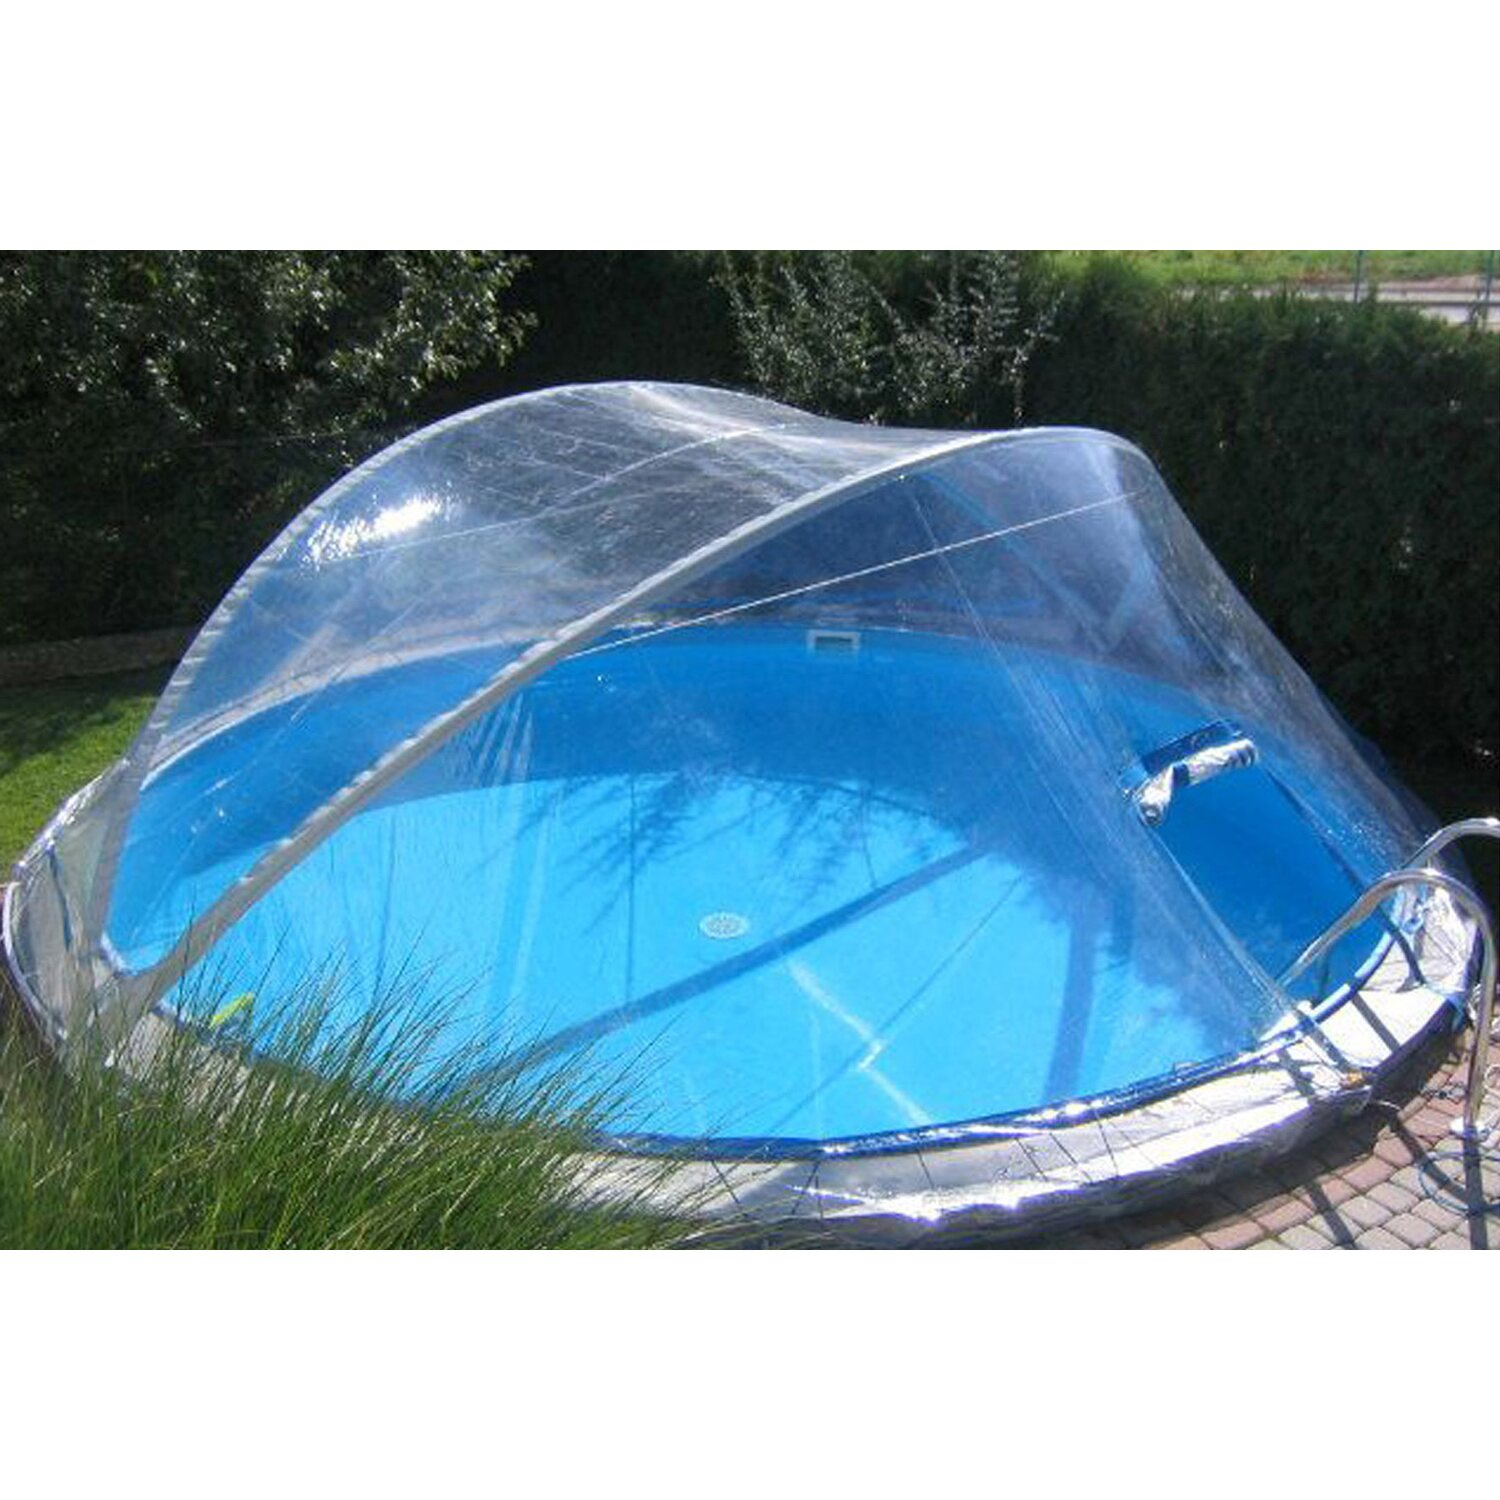 summer fun pool berdachung cabrio dome f r pools 200 cm. Black Bedroom Furniture Sets. Home Design Ideas